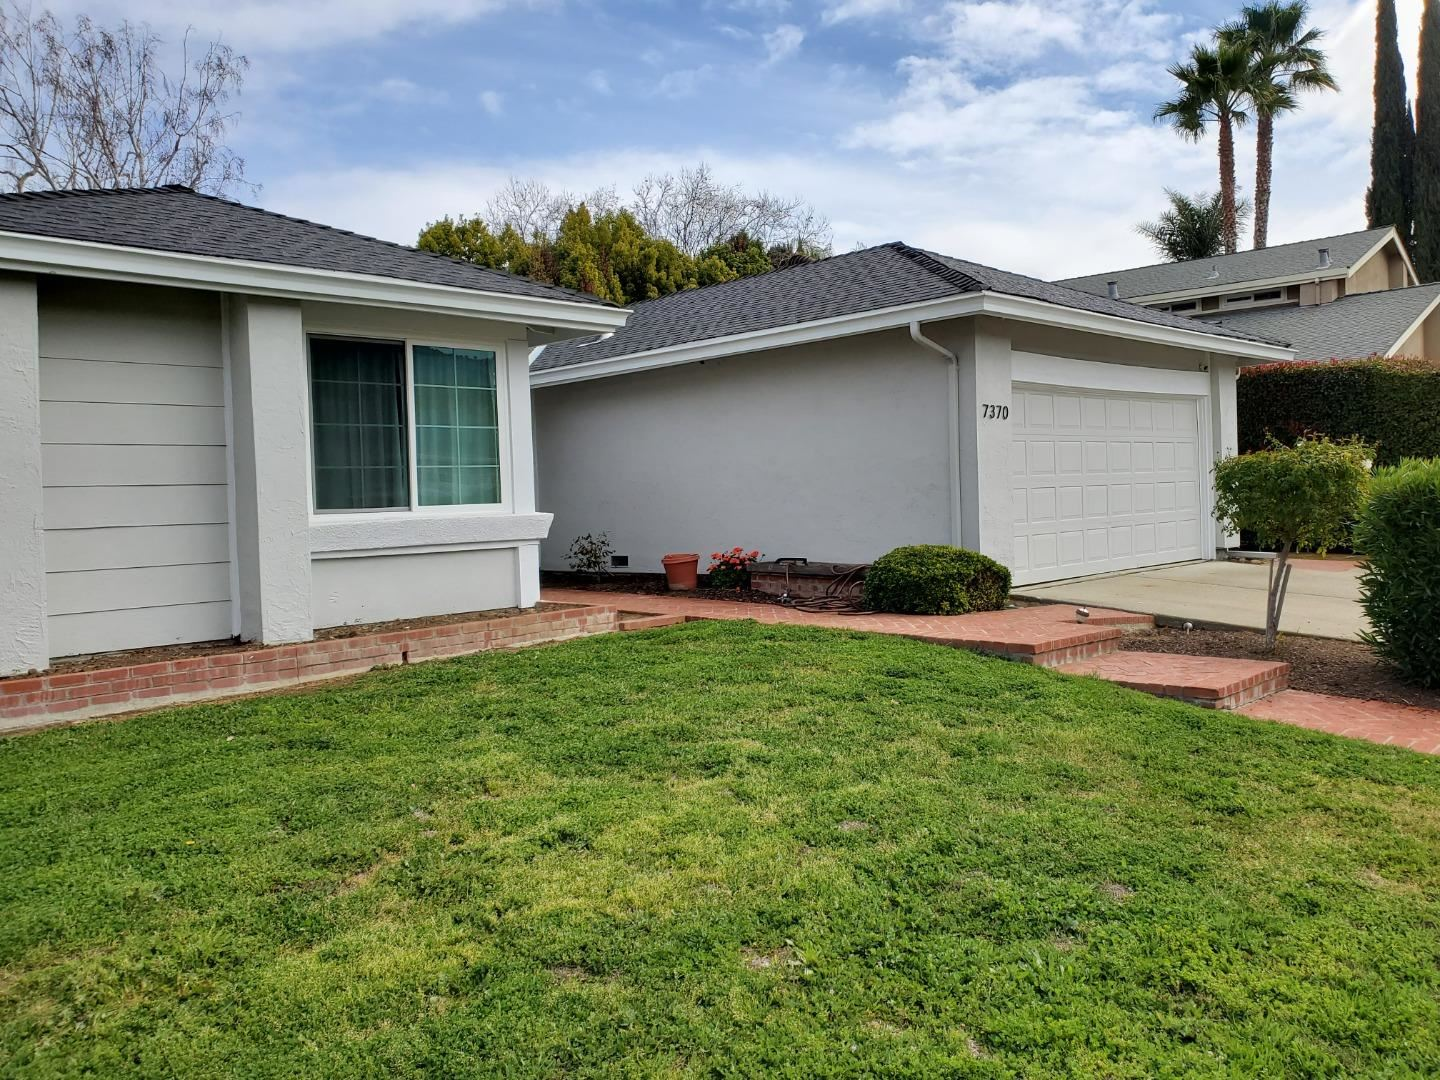 Photo for 7370 Crawford DR, GILROY, CA 95020 (MLS # ML81837123)